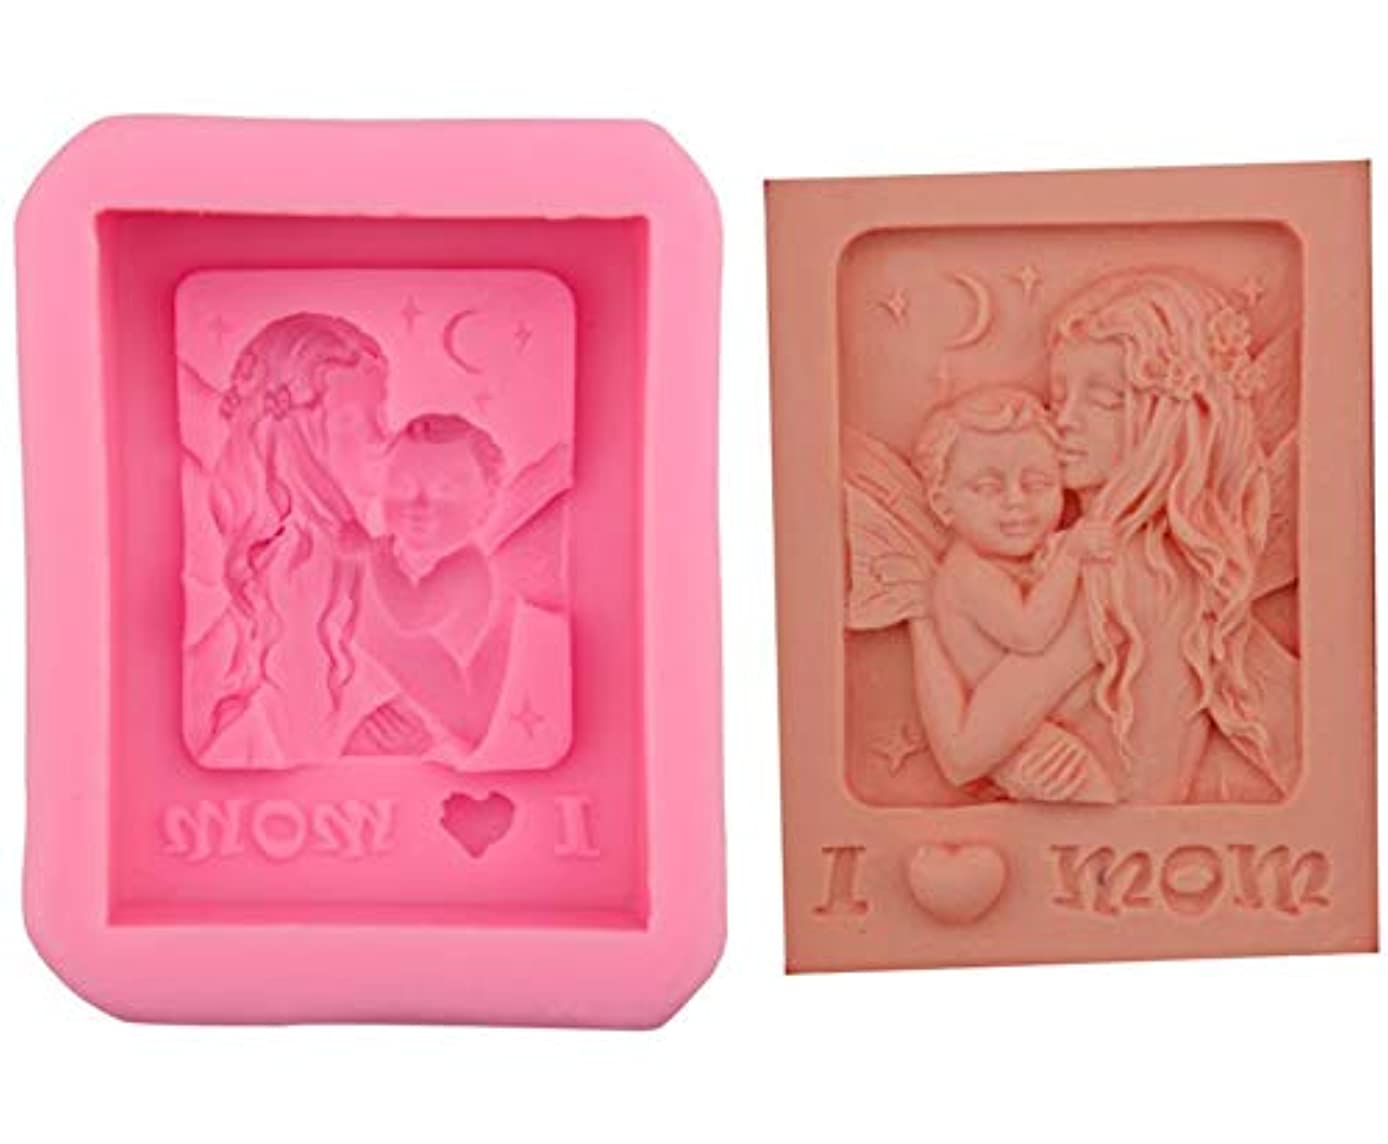 Mother's Day Silicone Soap mold I Love Mom Mother Holding Baby Craft Art DIY Molds for Soap Lotion Bars, Bath Bombs, Wax, Crayon, Polymer clay